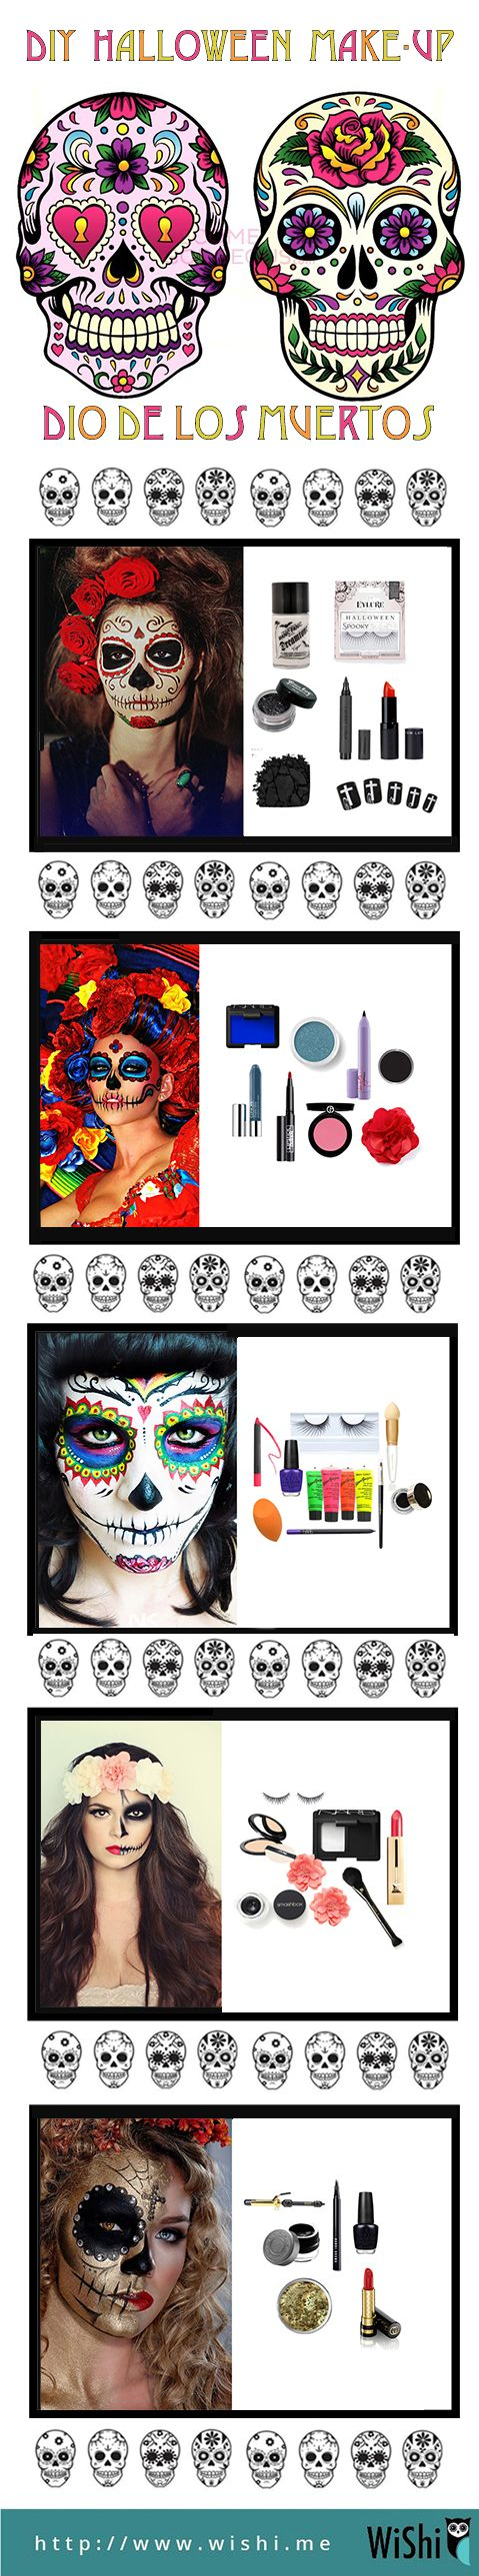 Fun makeup guide for what you'll need to do Dia de los Muertos / Halloween makeup.